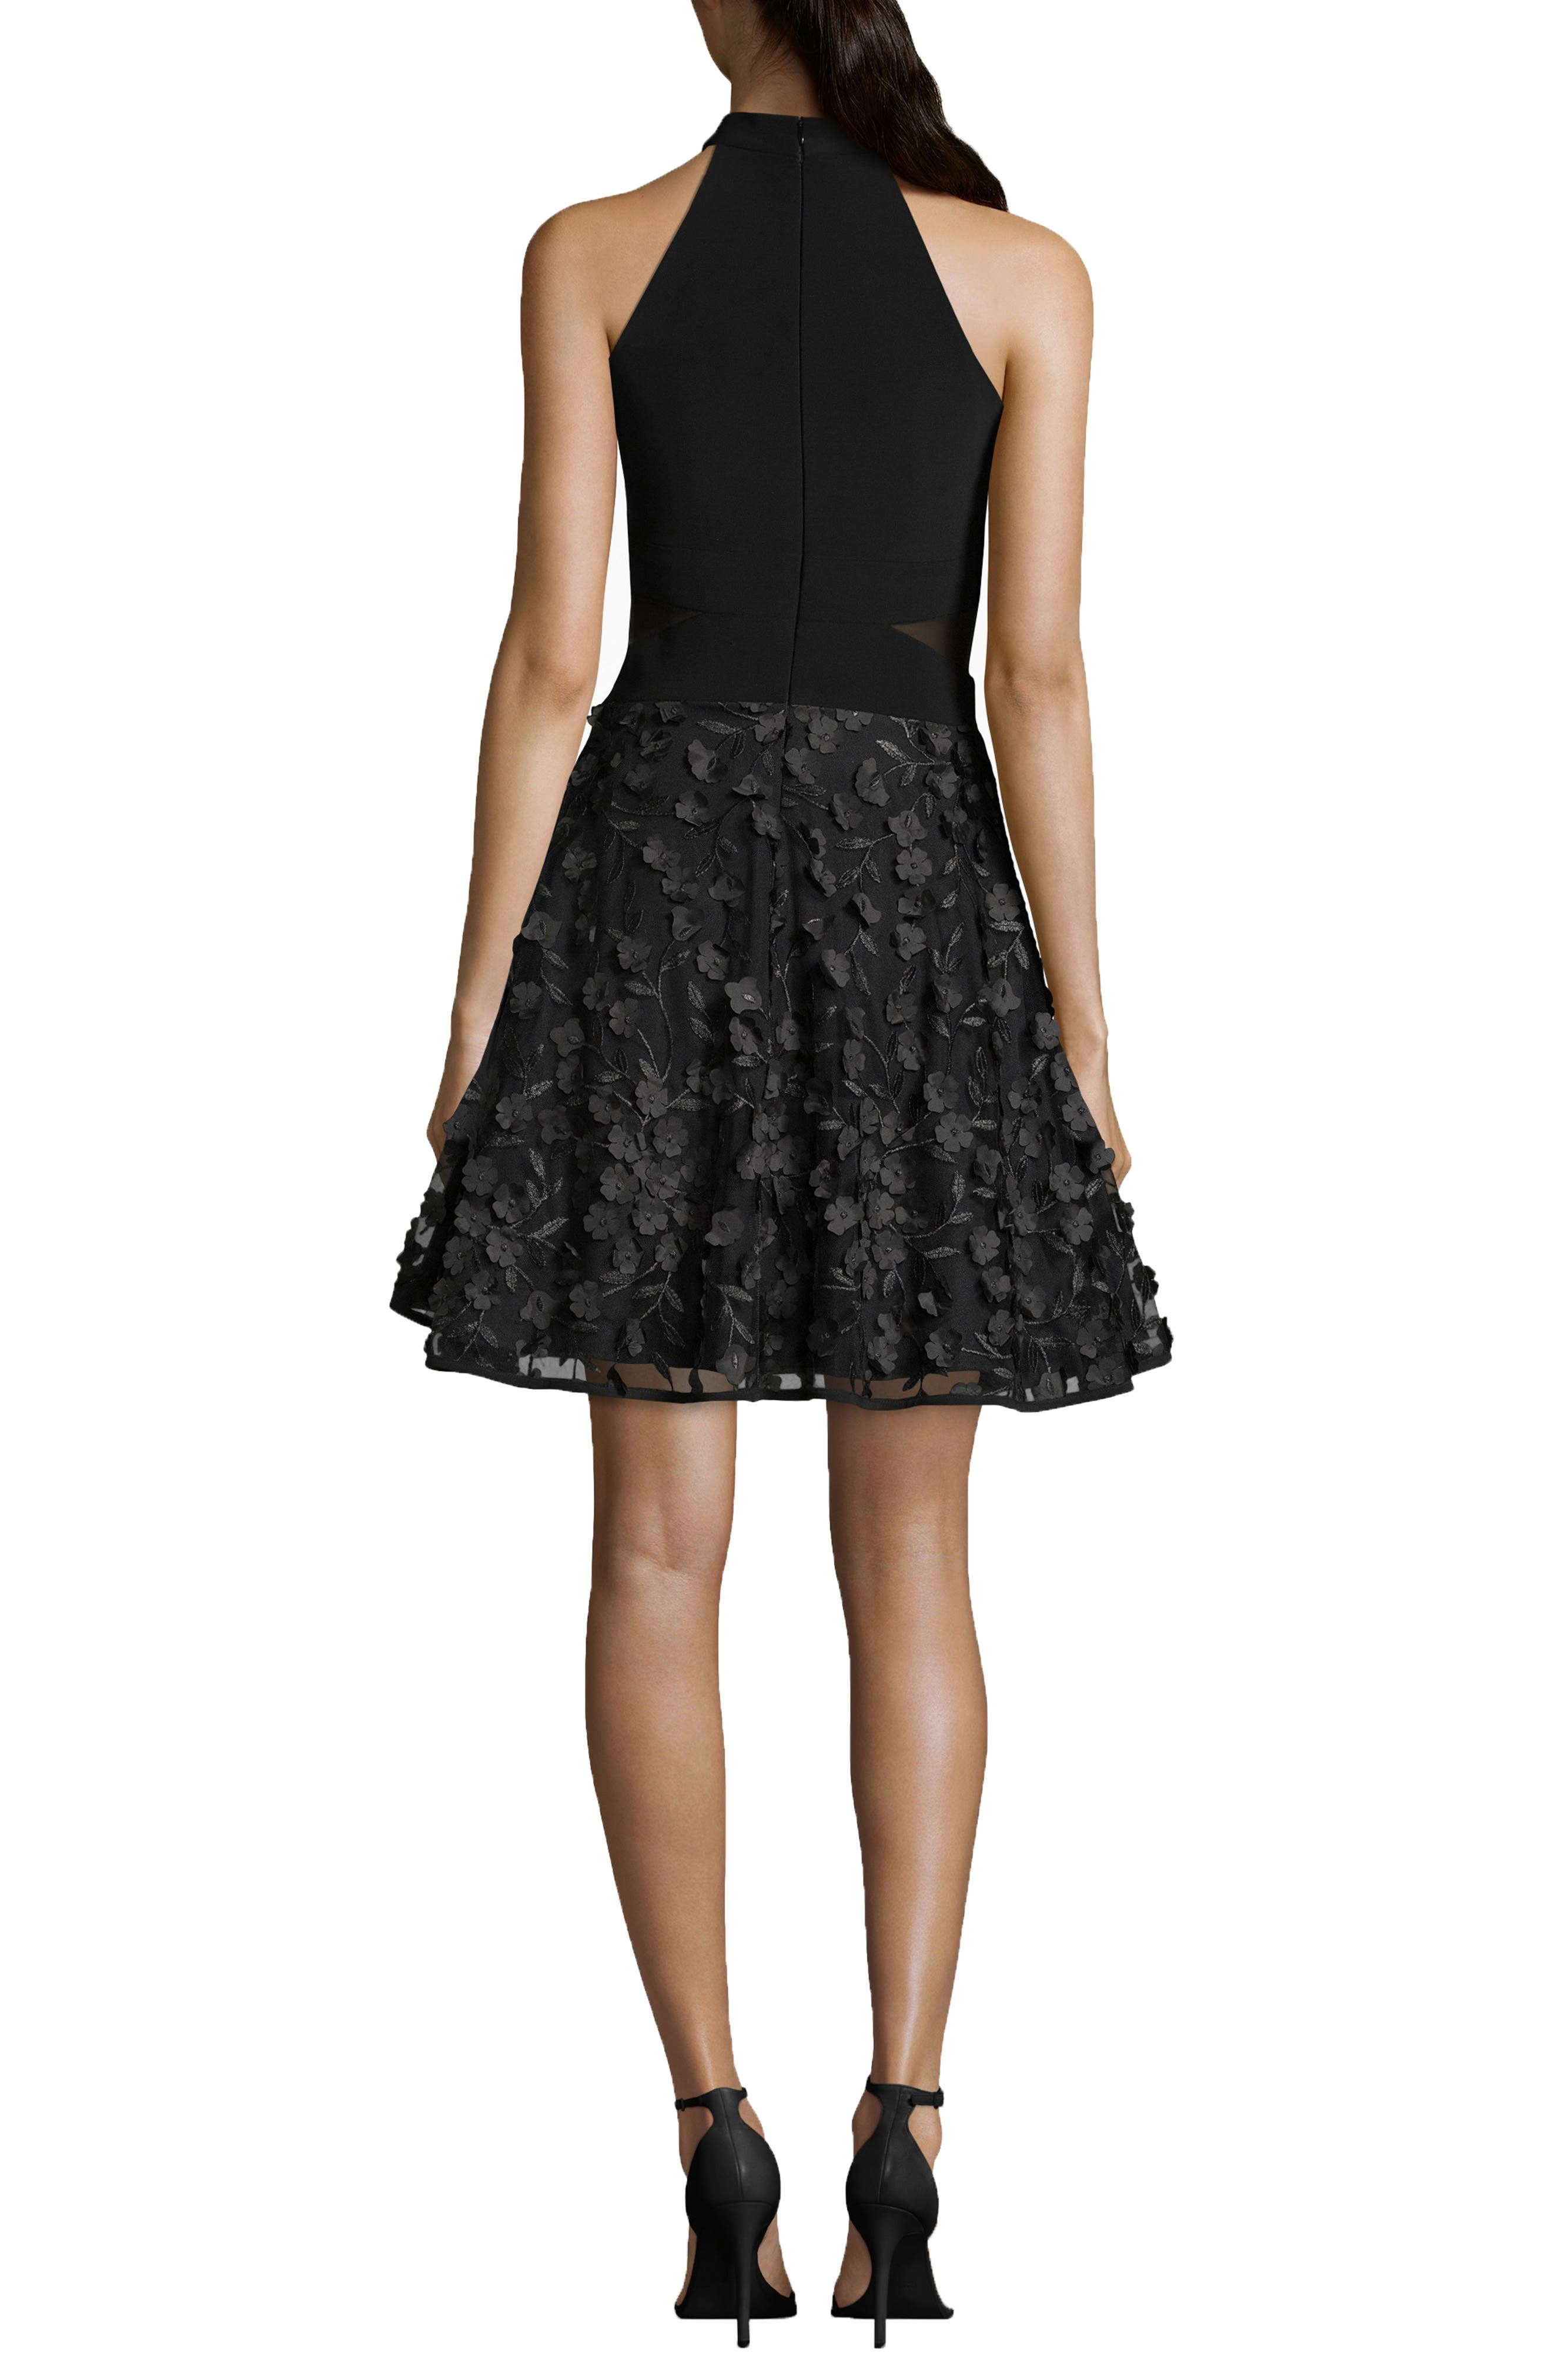 3D Floral Party Dress,                             Alternate thumbnail 2, color,                             BLACK/ BLACK